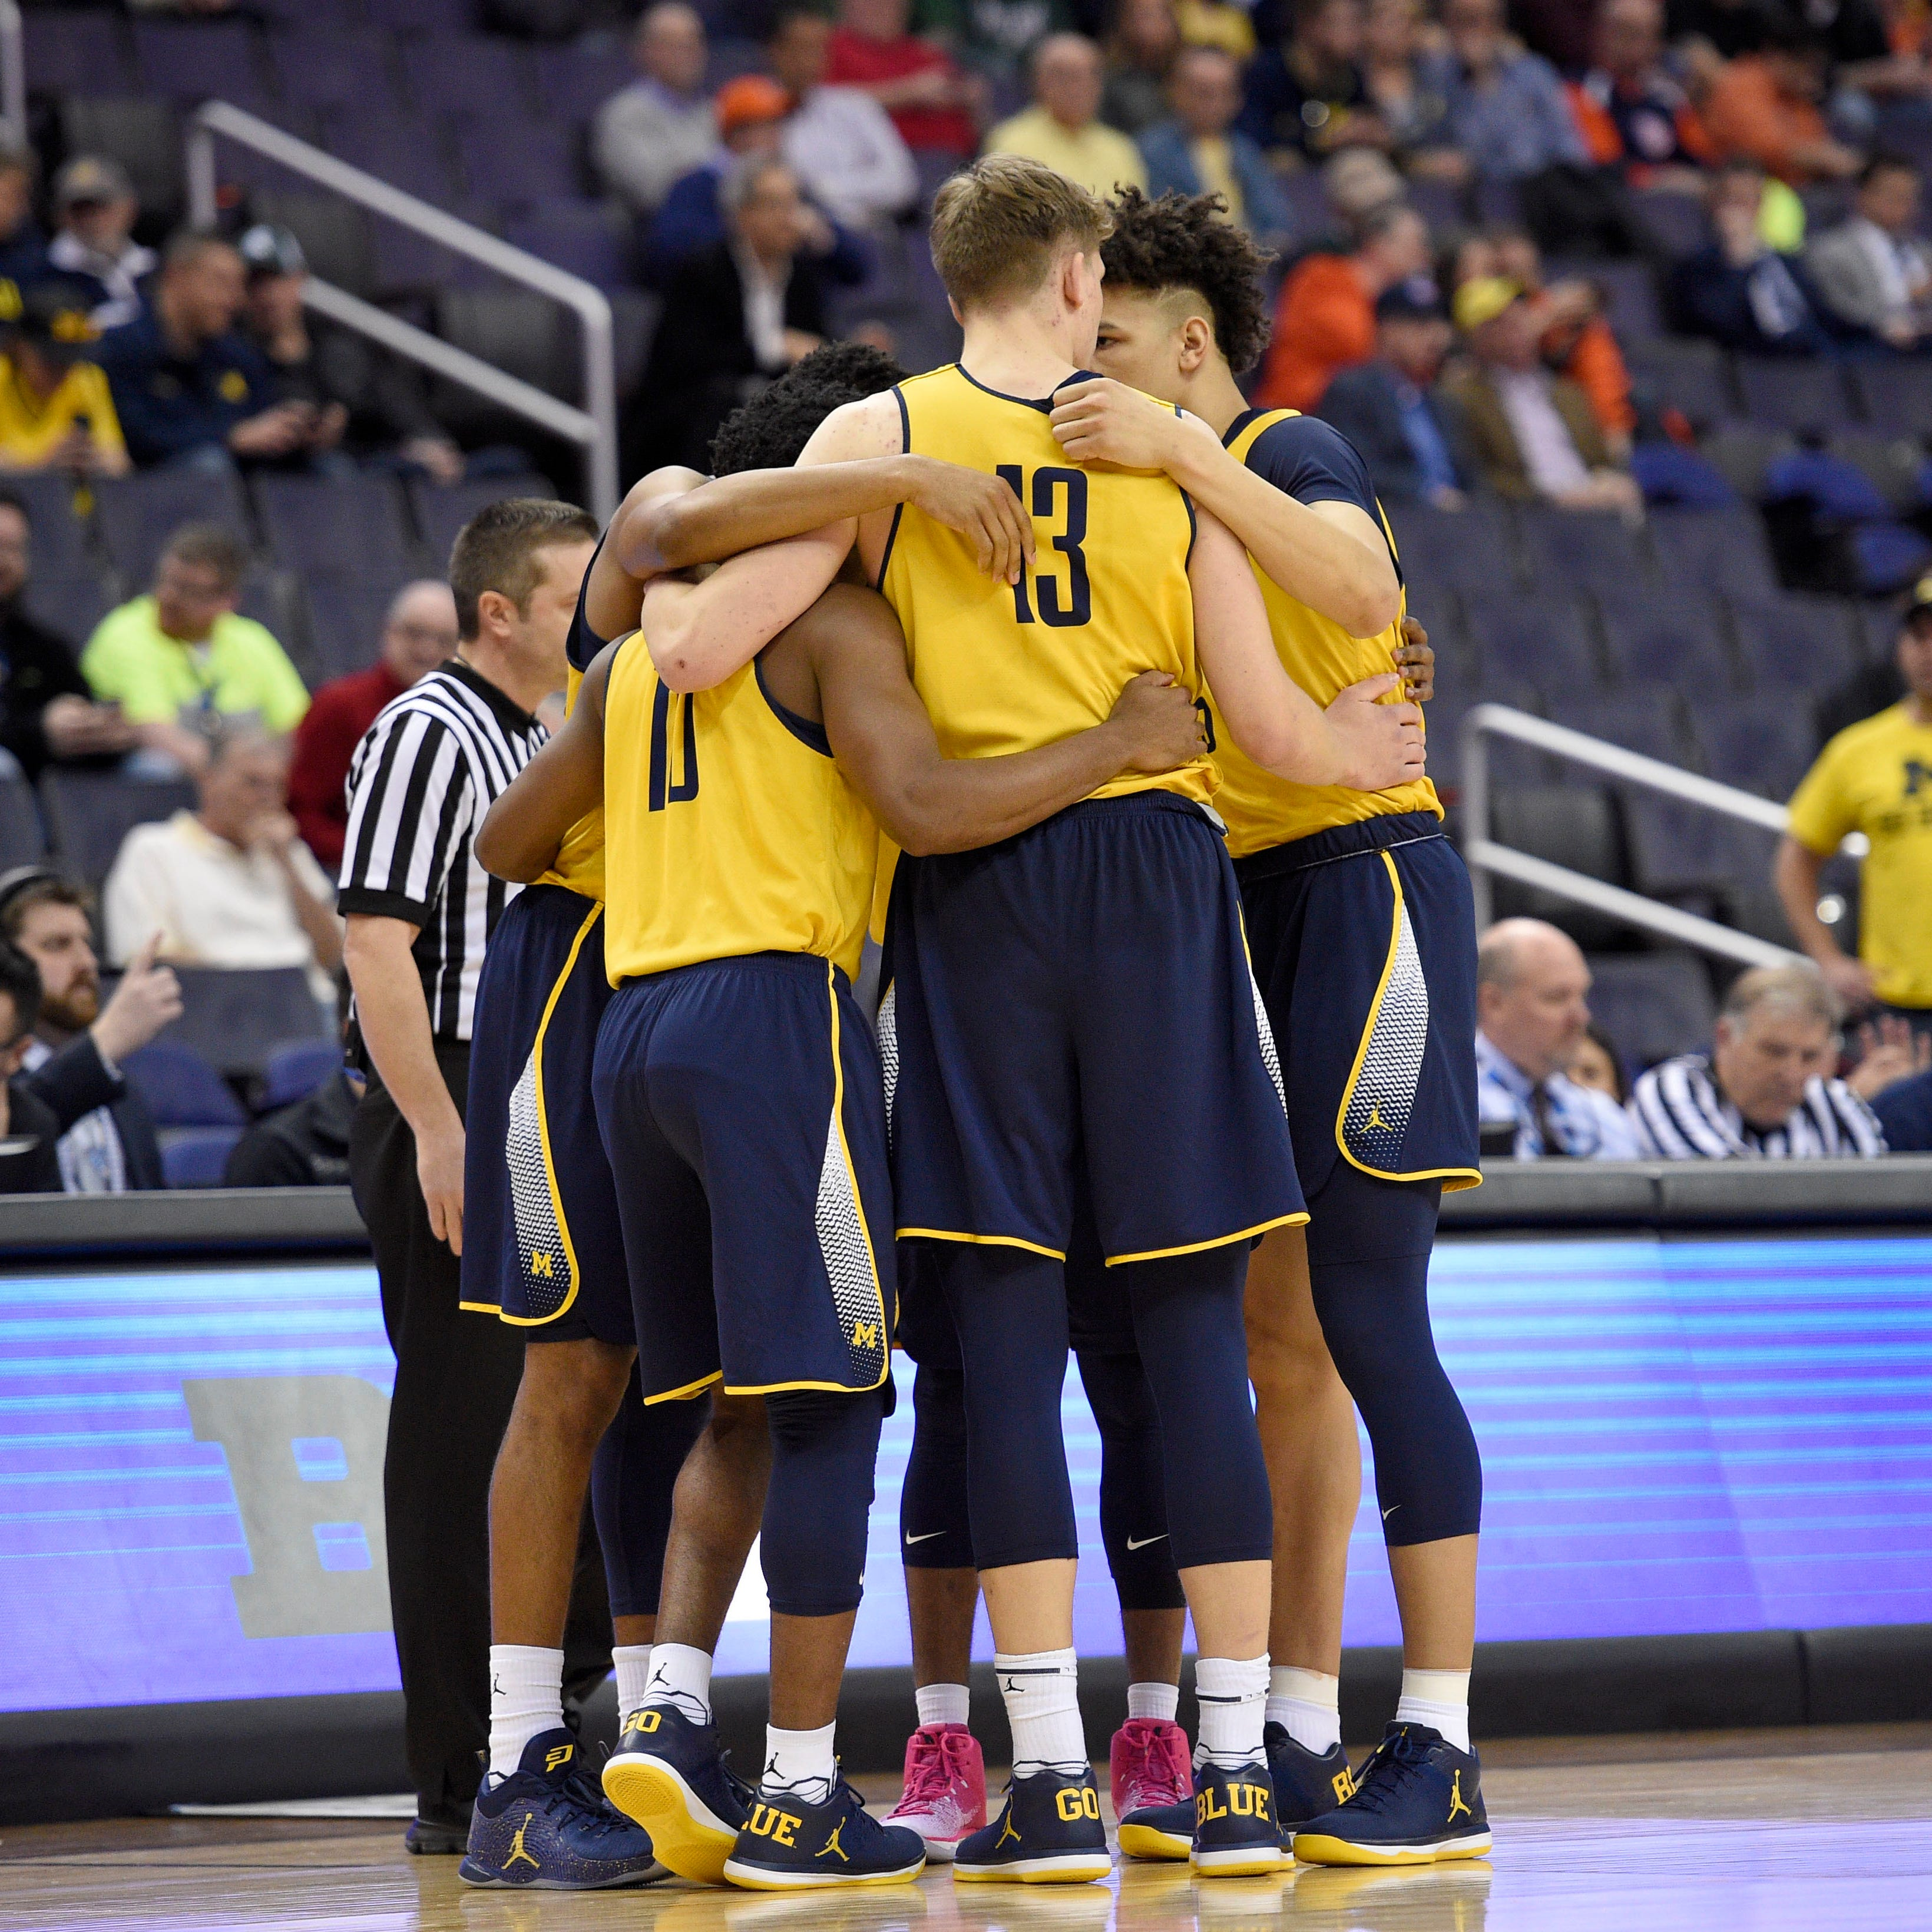 Michigan basketball plane crash: NTSB blames jammed part on accident